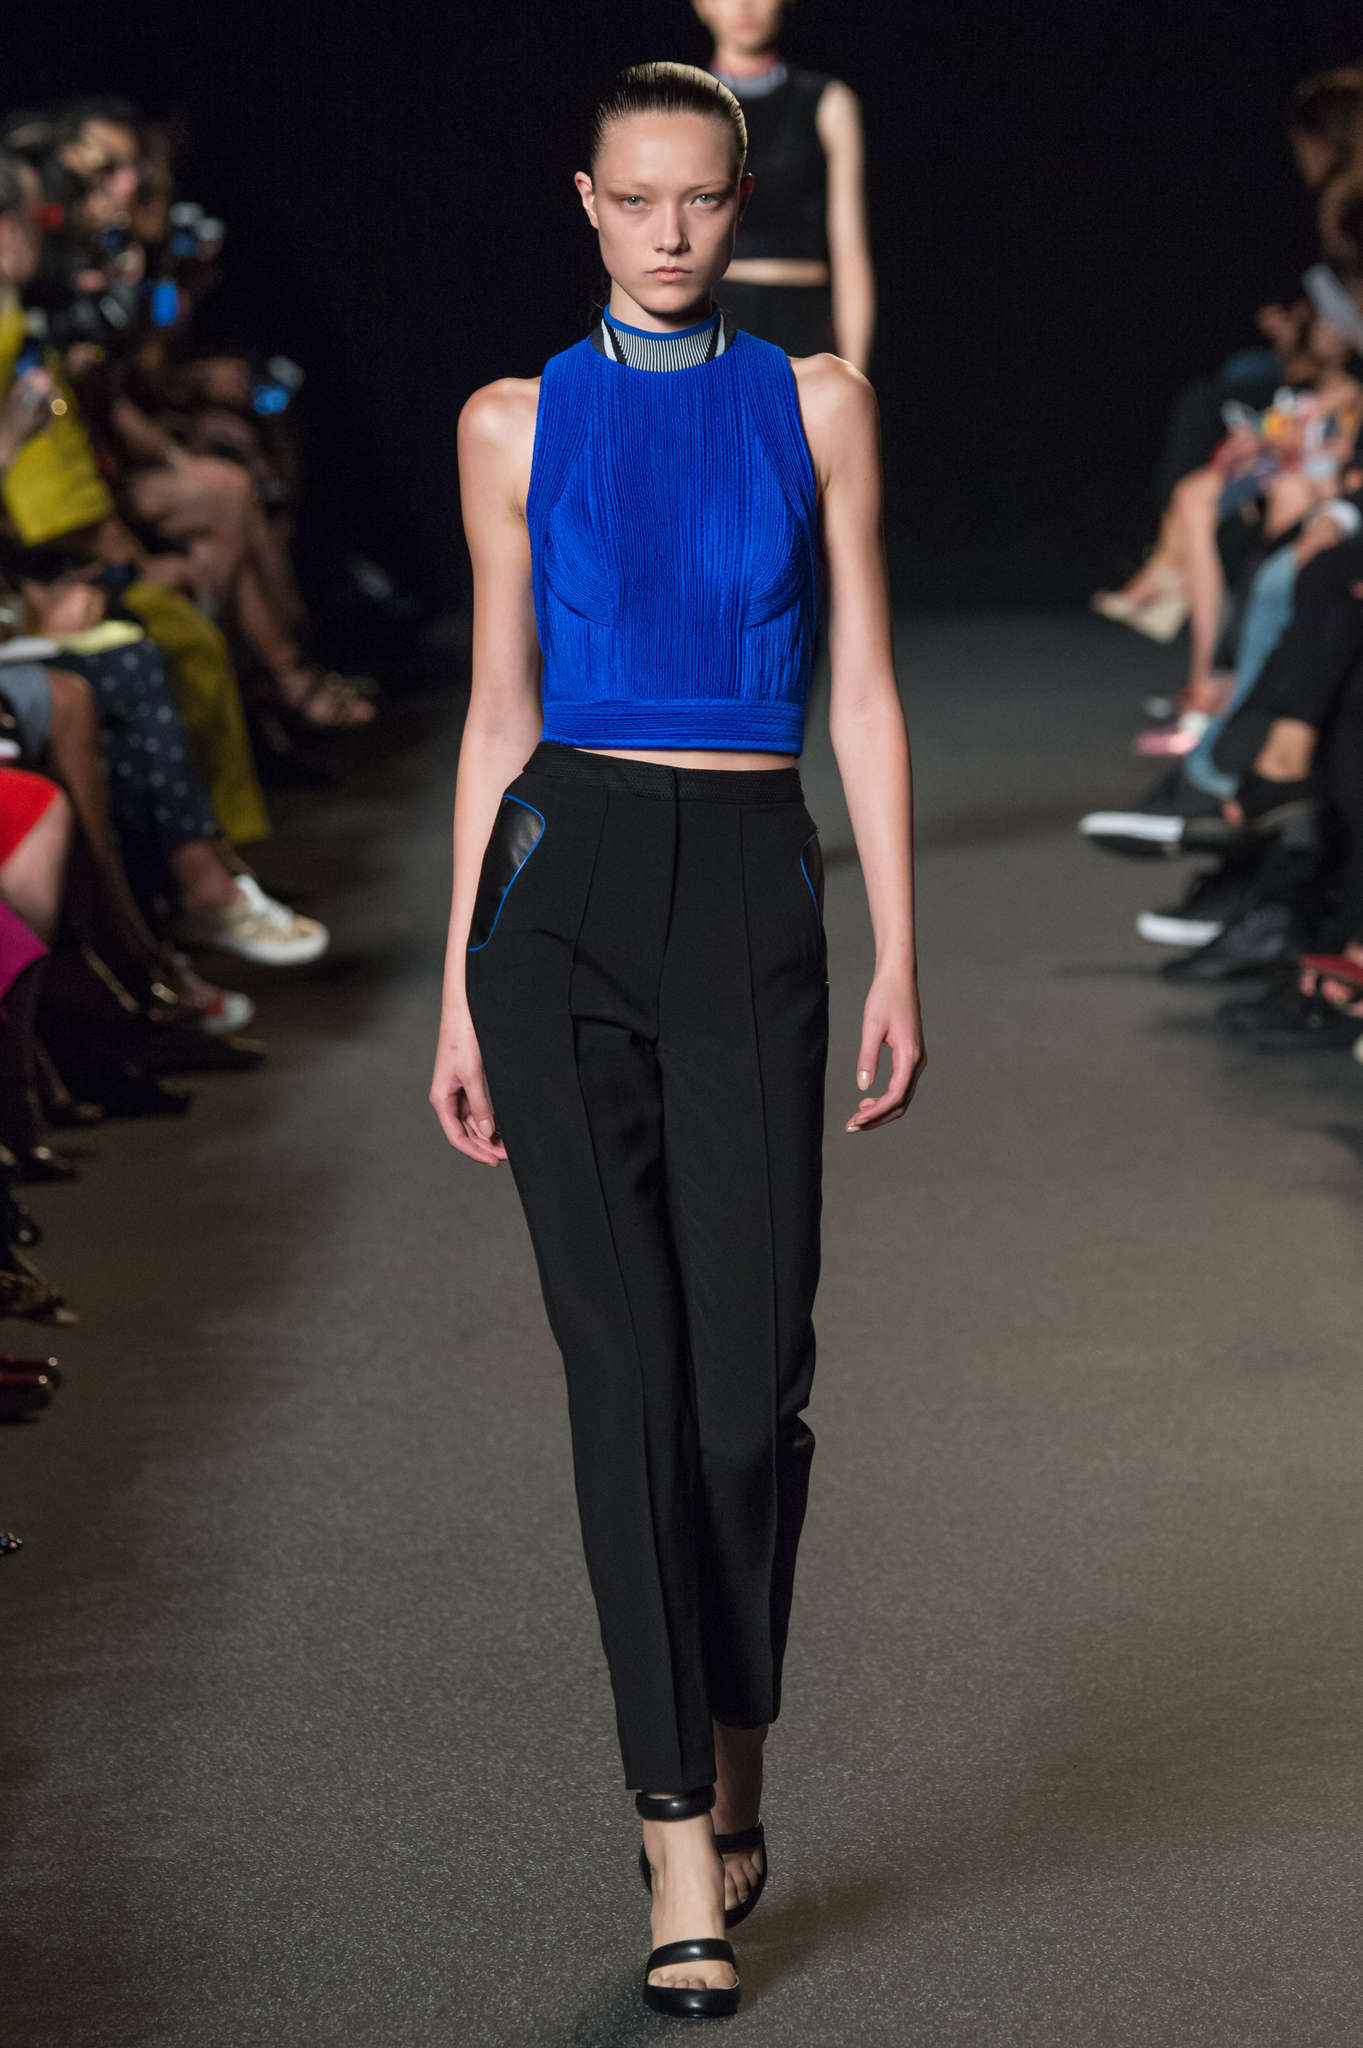 Alexander Wang - SS15 on Trends Periodical